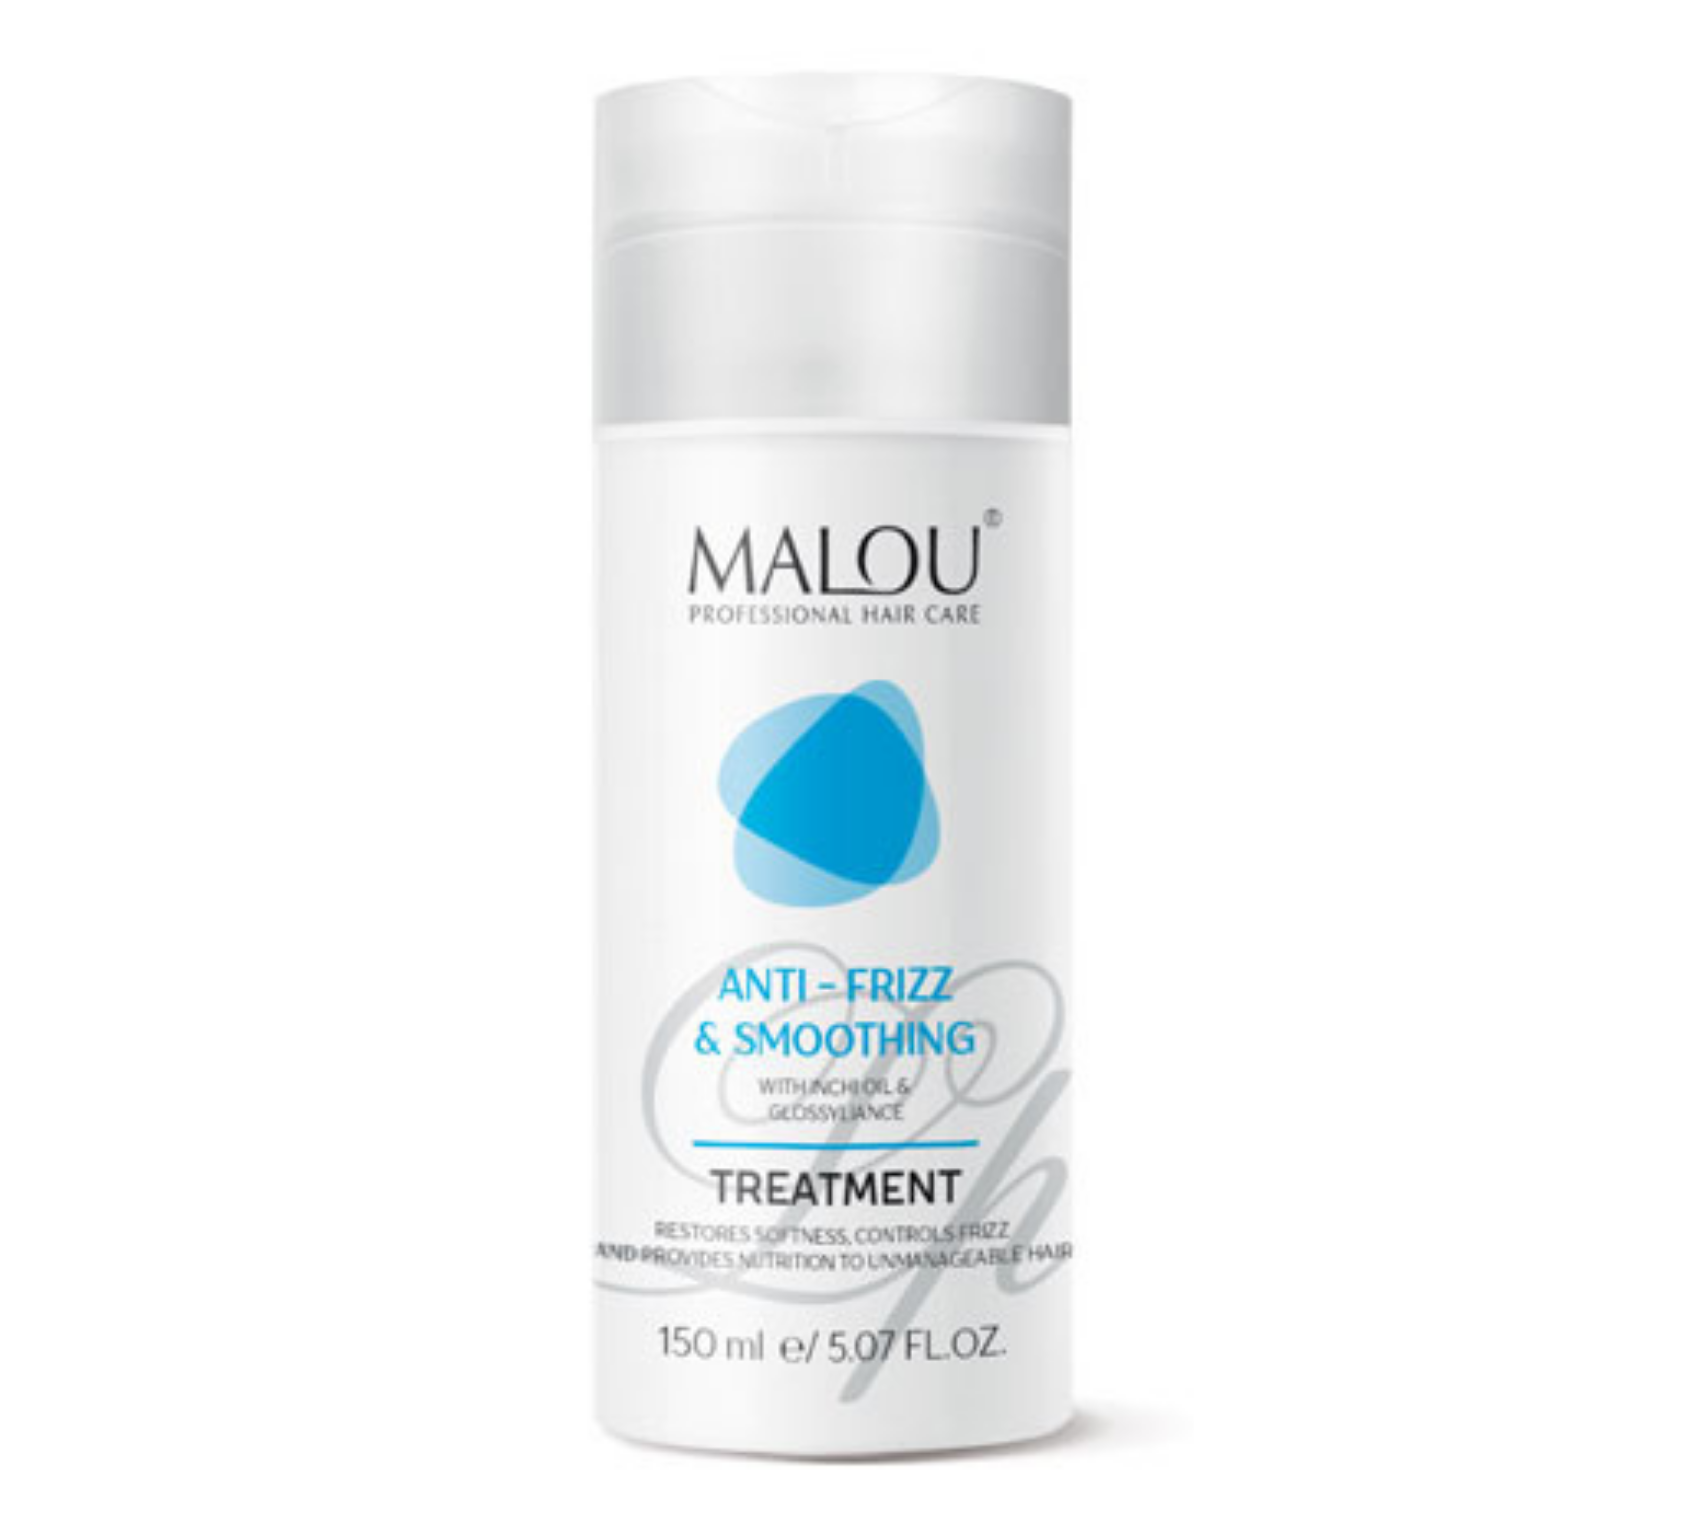 smoothing treatment for unmanageable hair